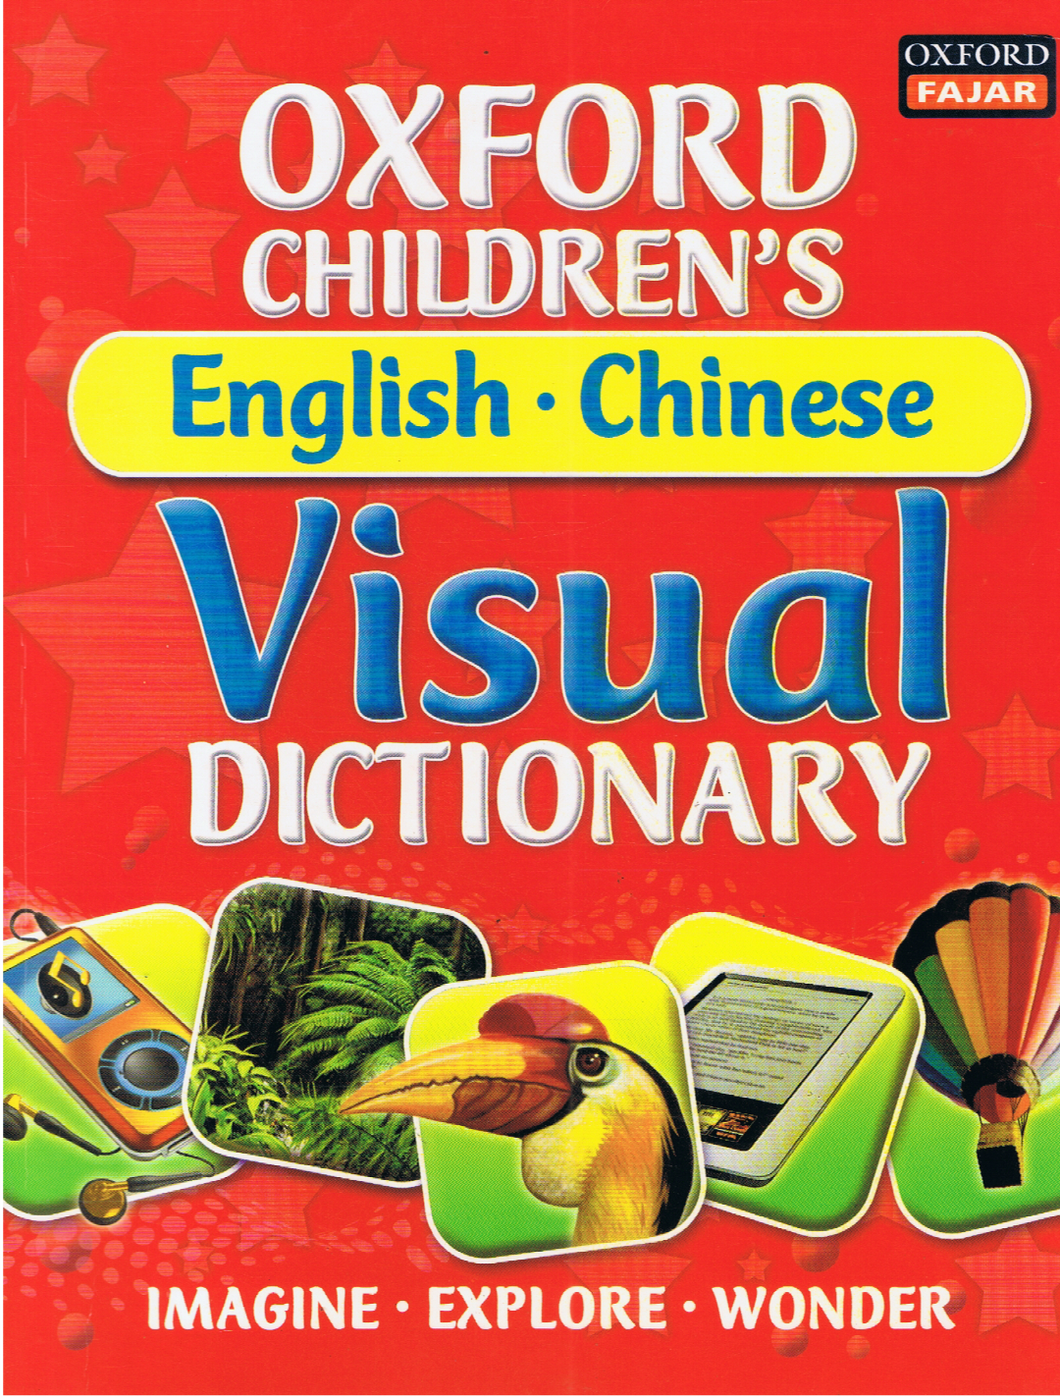 OxfordFajar: Oxford Children's English - Chinese Visual Dictionary